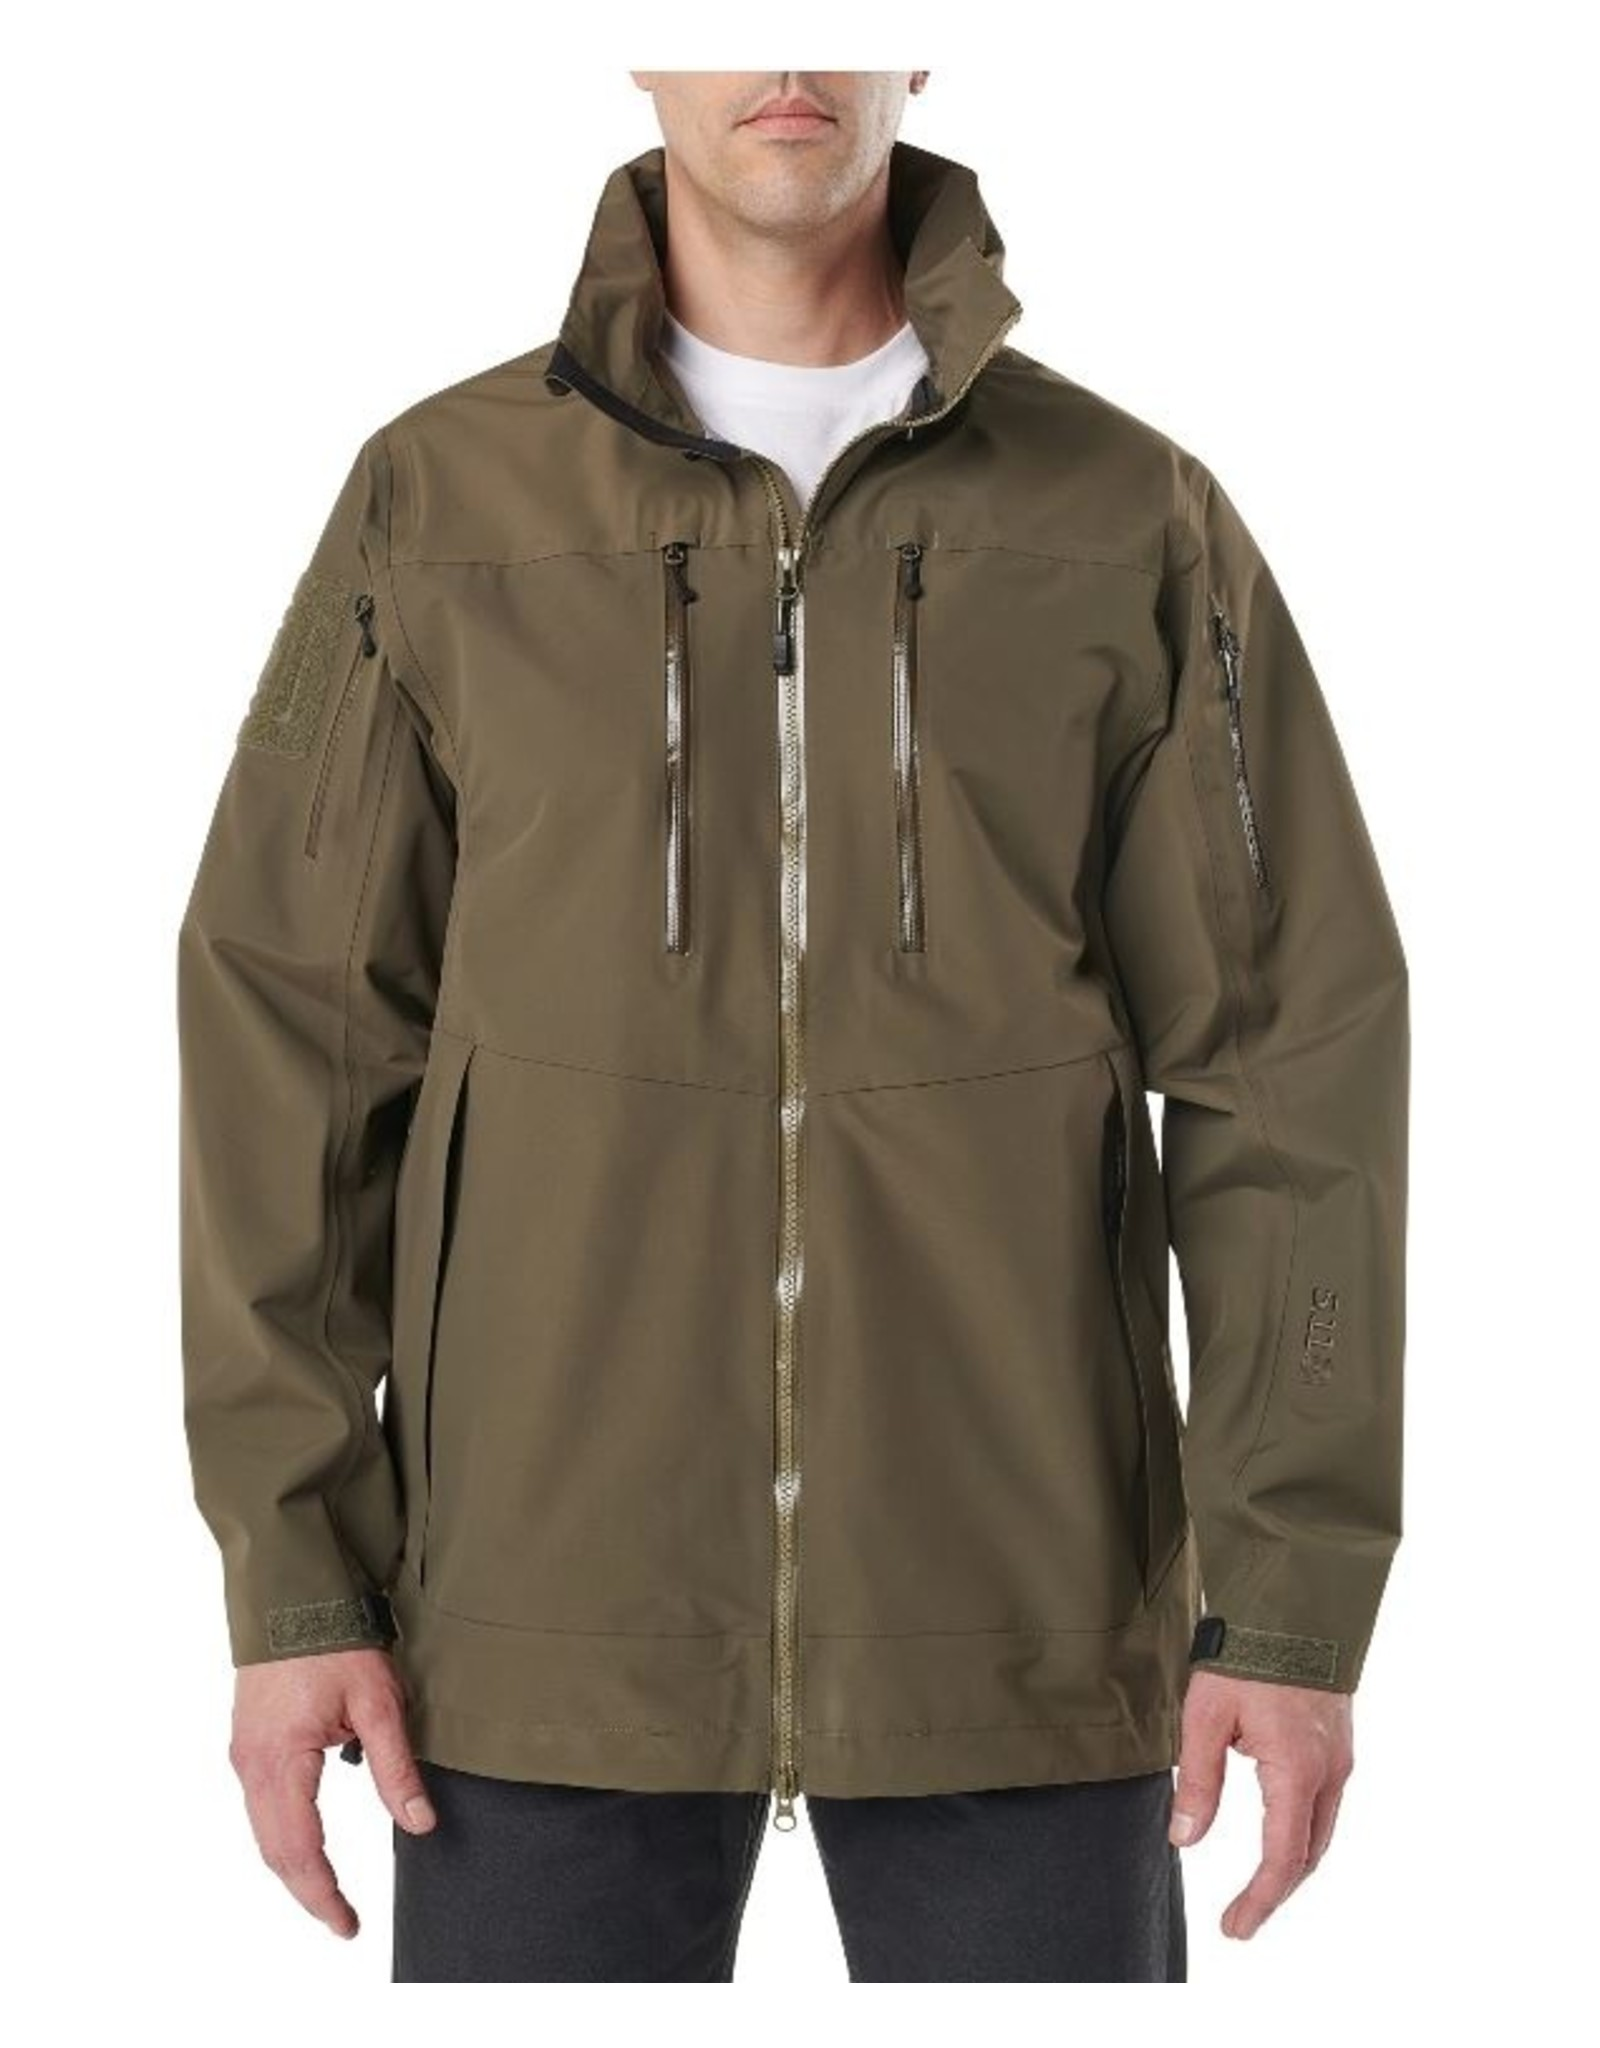 5.11 APPROACH JACKET - ONLINE ONLY